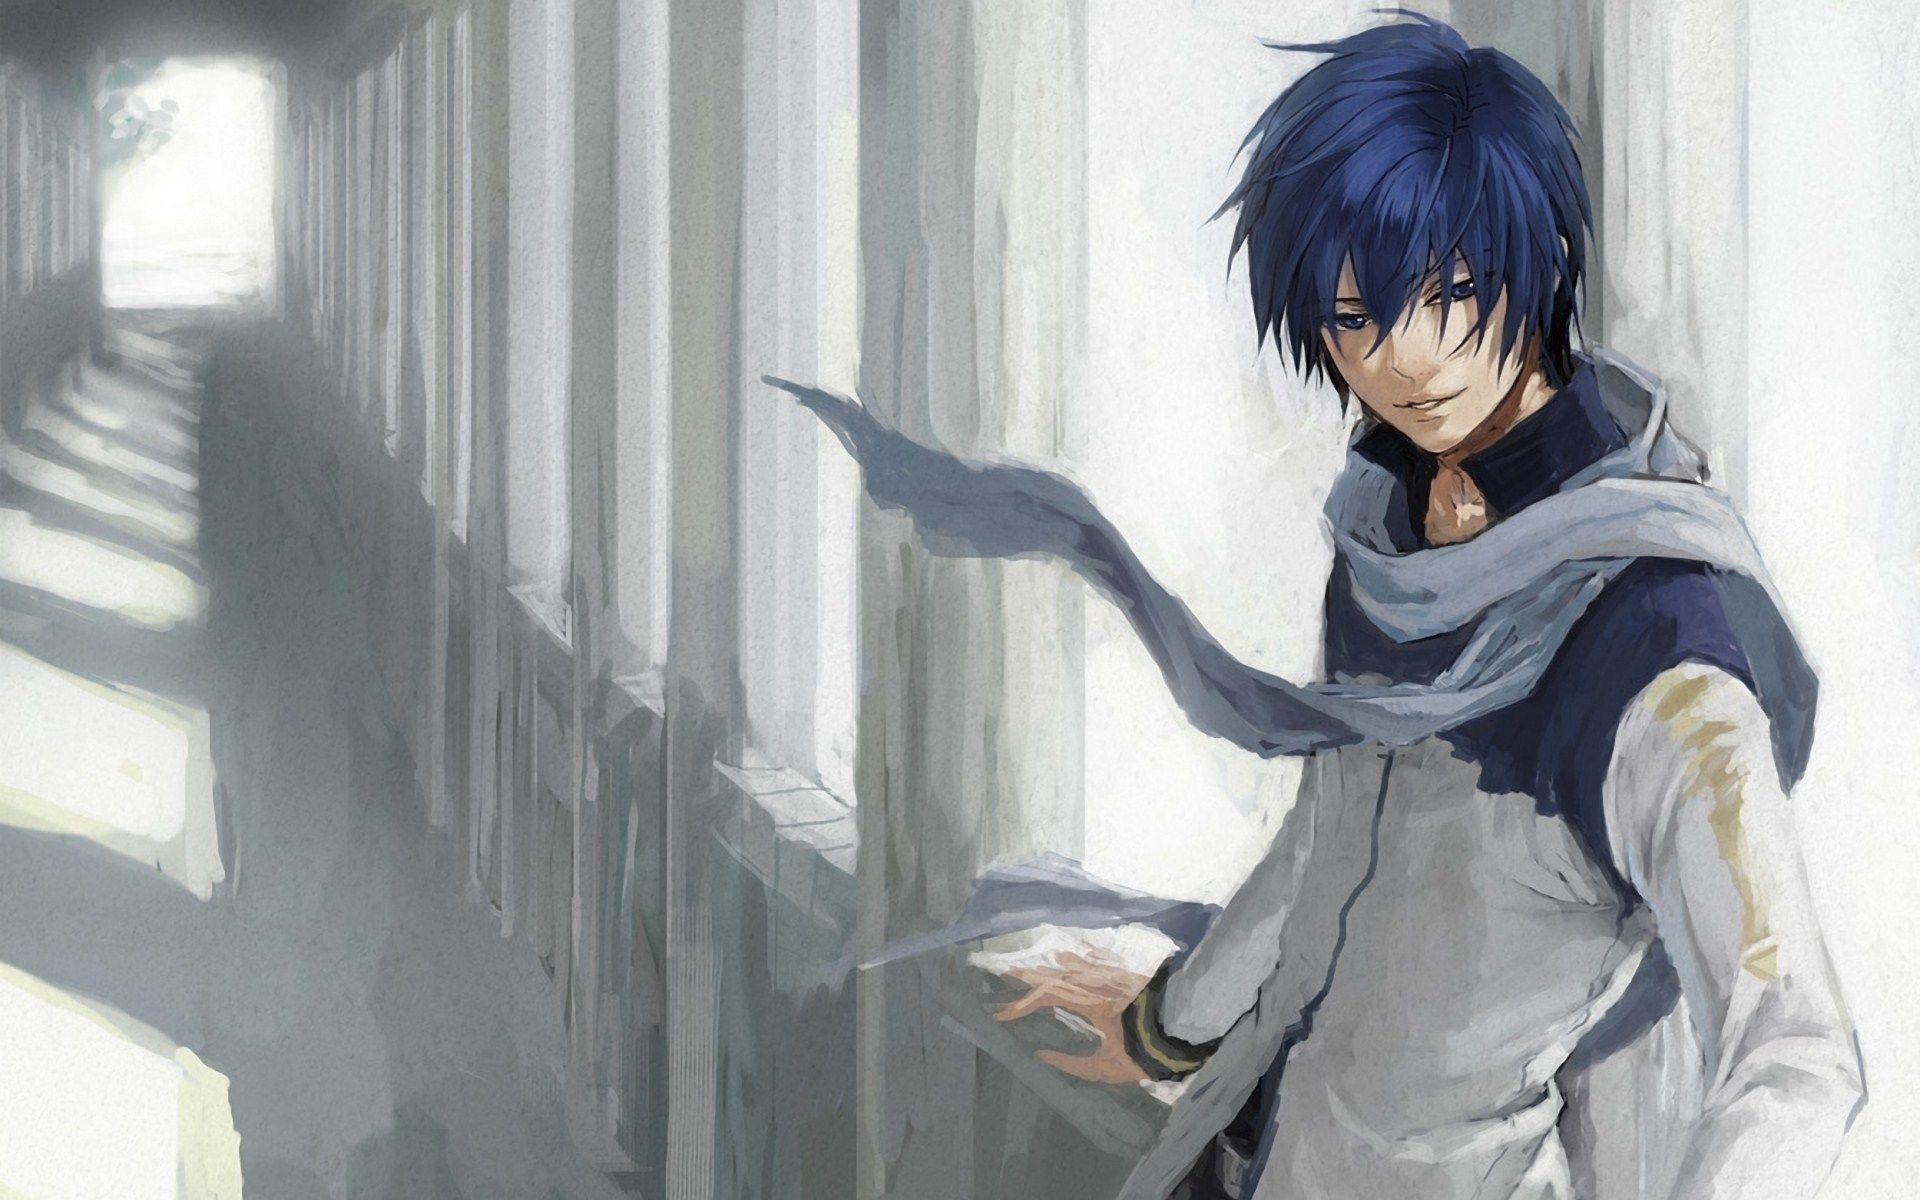 Dark anime boy high resolution wallpaper hd dlwallhd